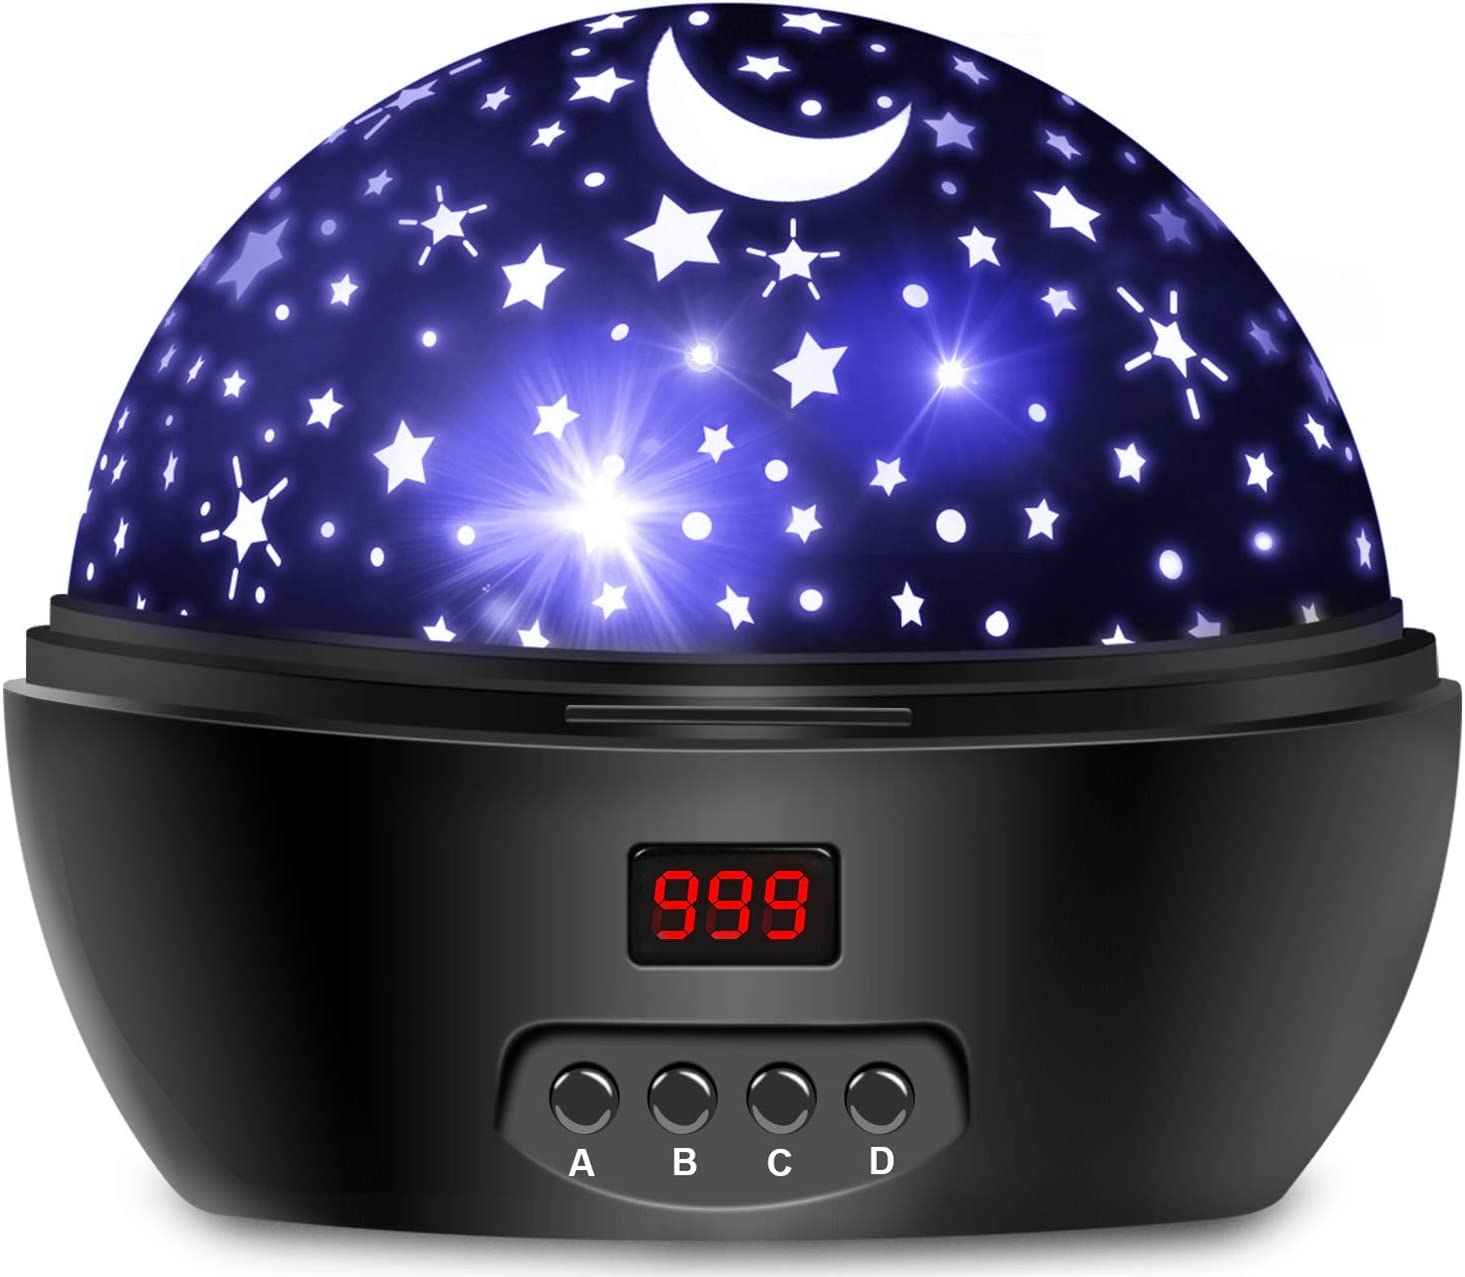 Night Lights for Kids Star Projector Gi Timer Boys with and Finally resale start Daily bargain sale